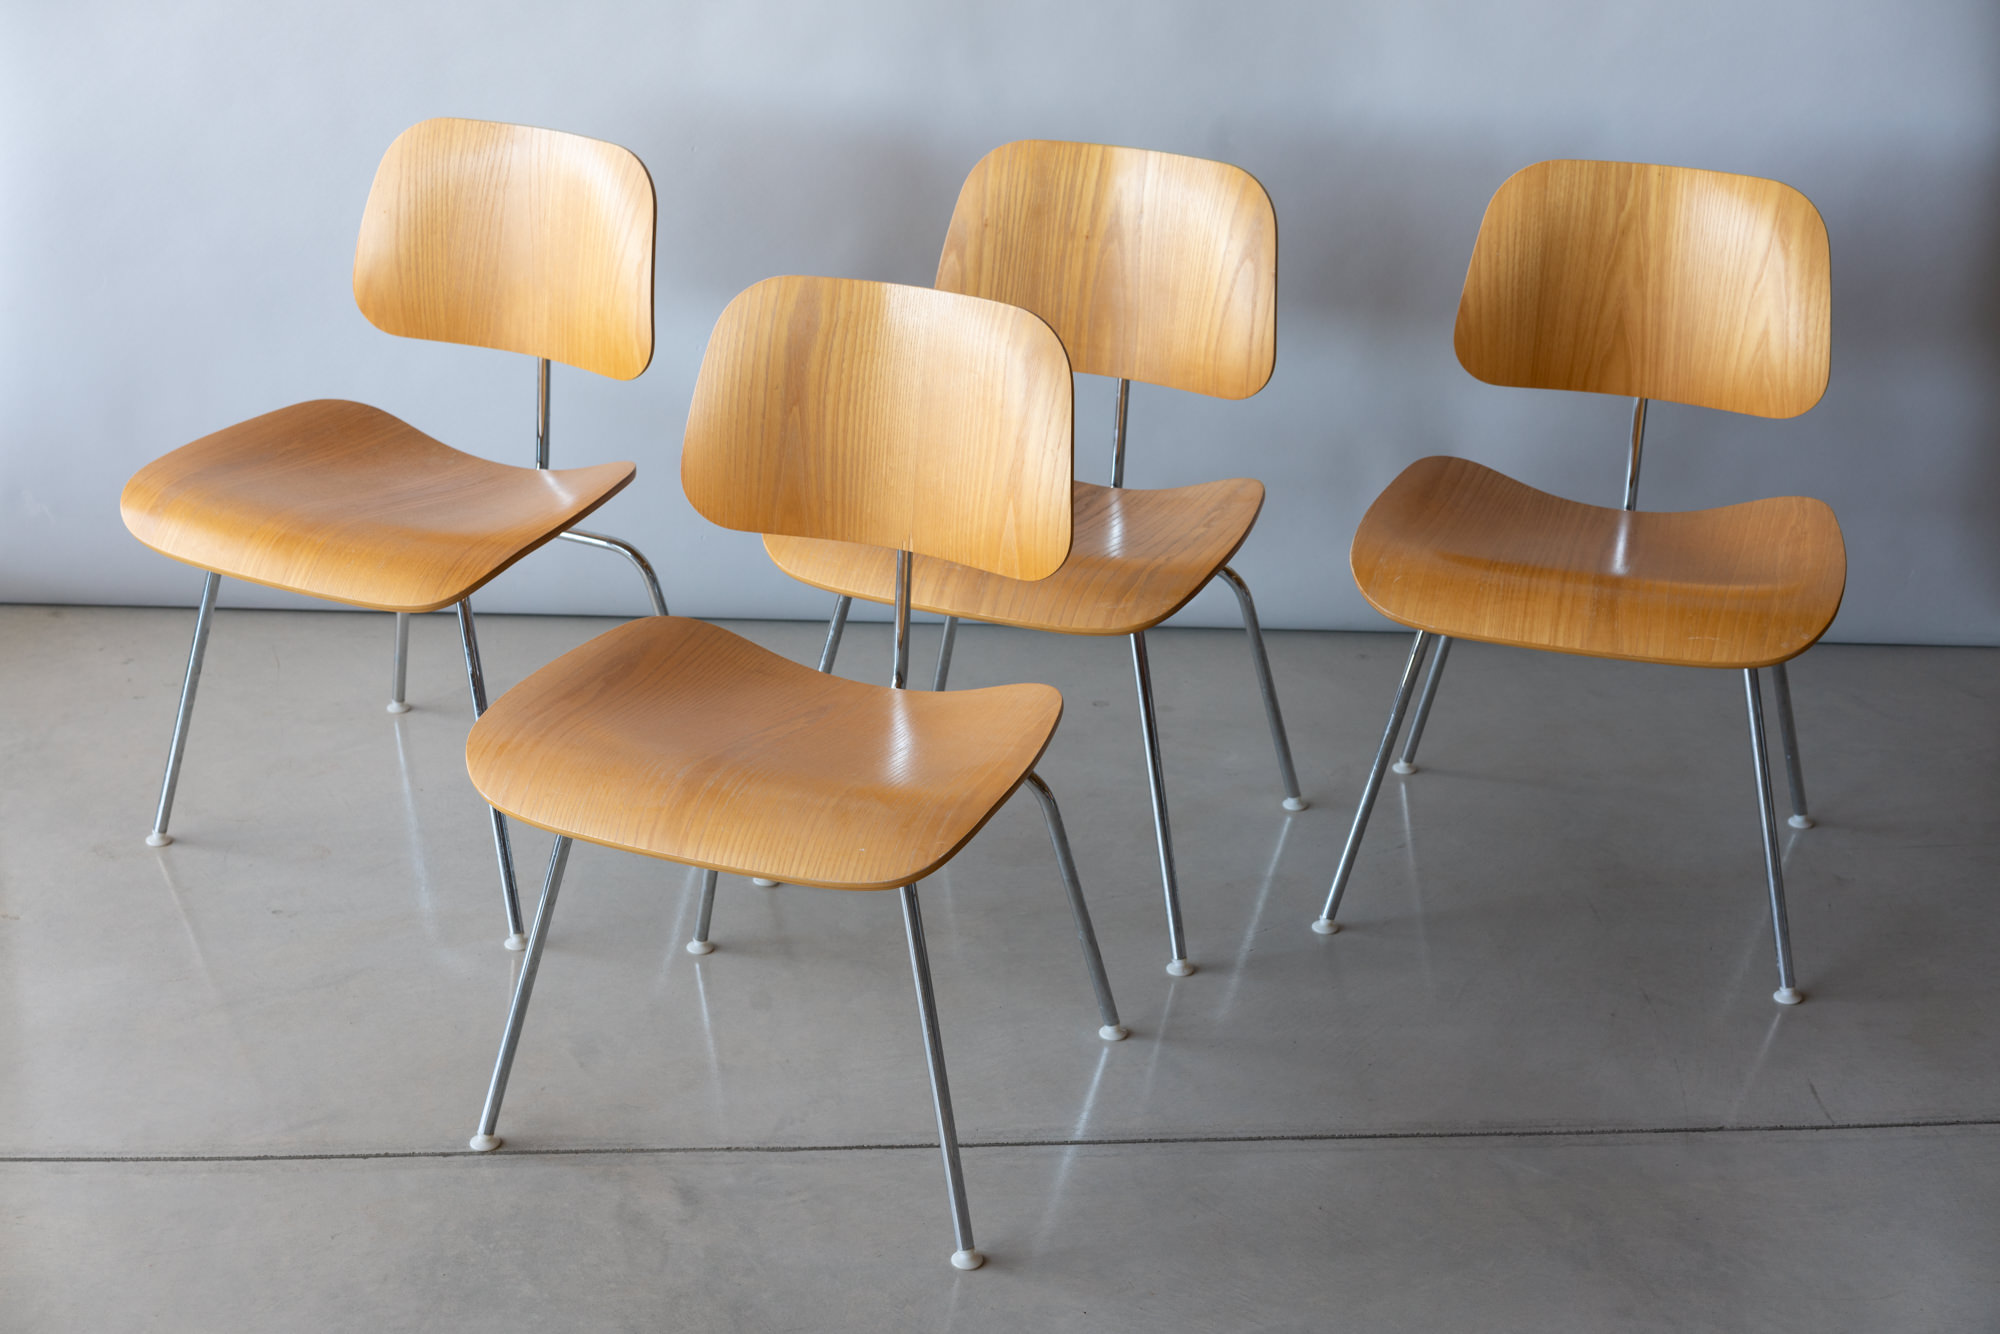 Set of 4 Eames Eames DCM Chairs